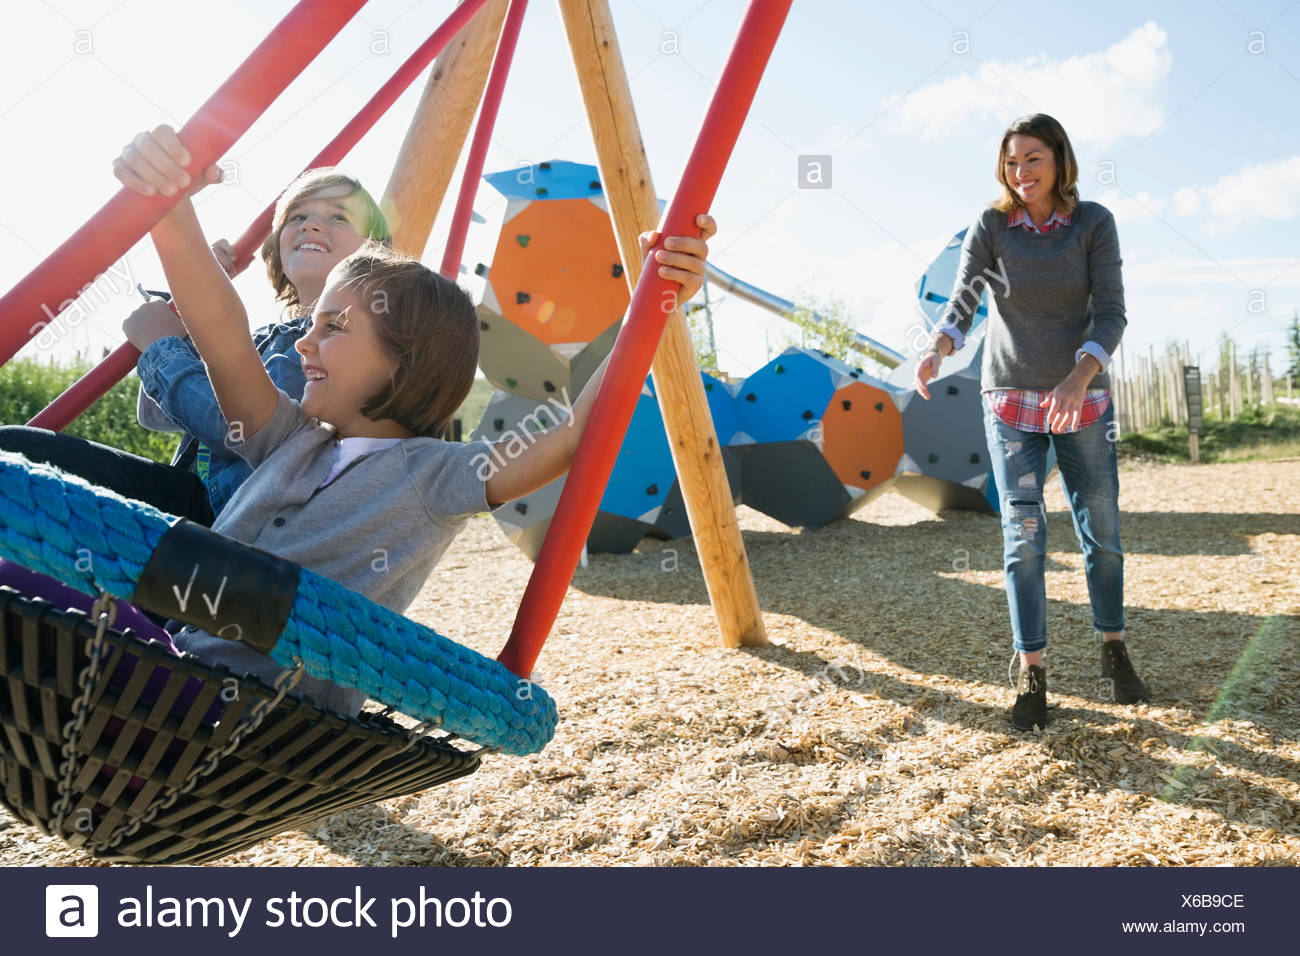 Mother pushing daughter and son in playground swing Stock Photo